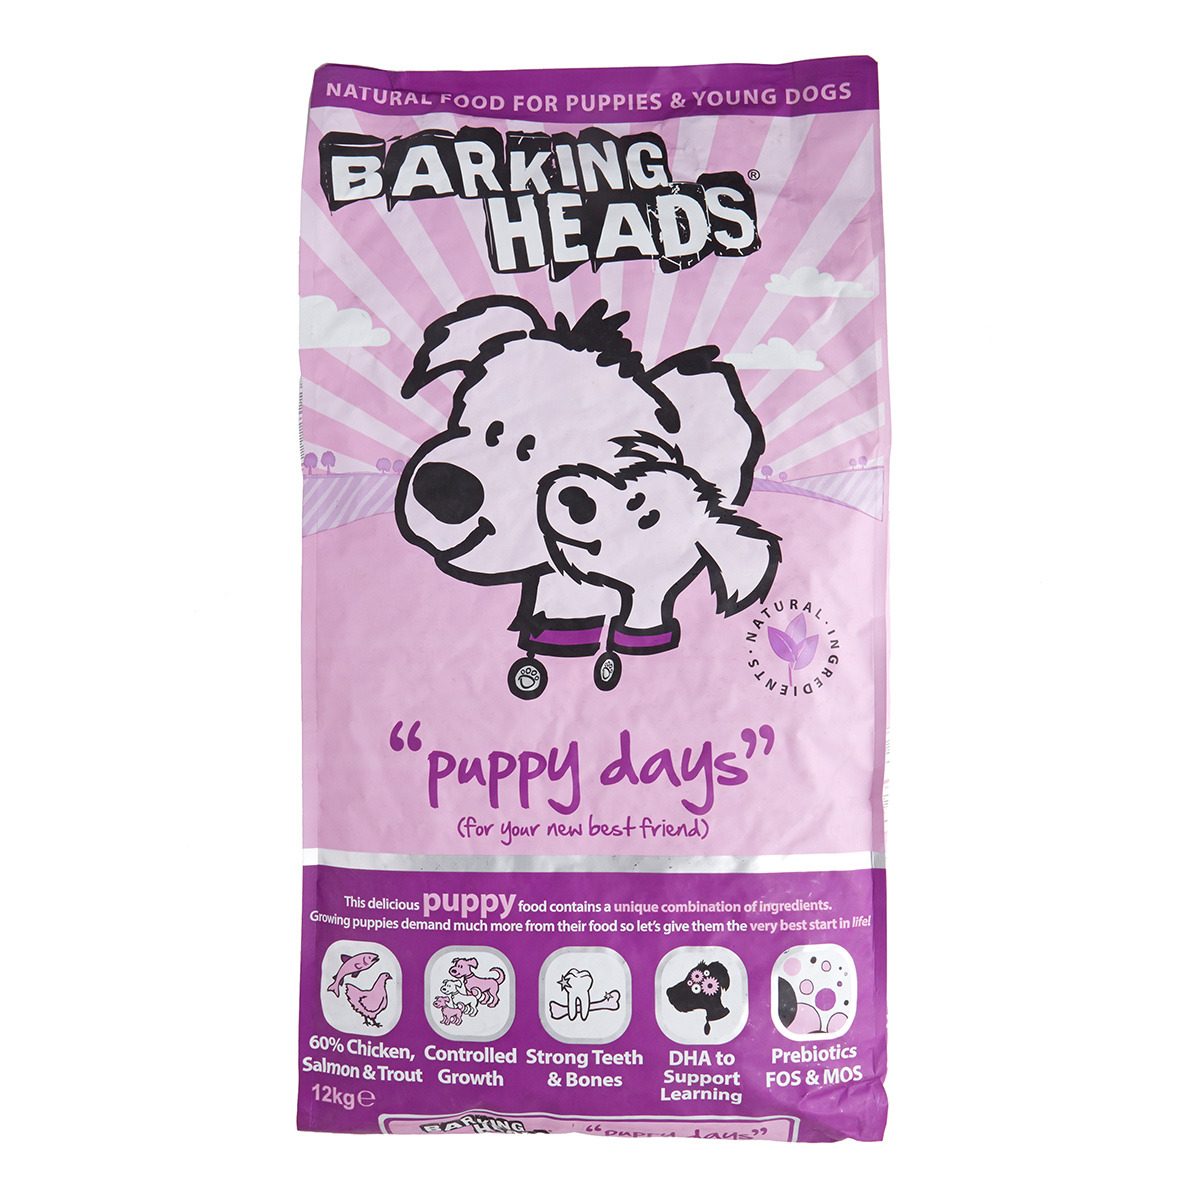 Barking Heads Puppy Days 2kg.